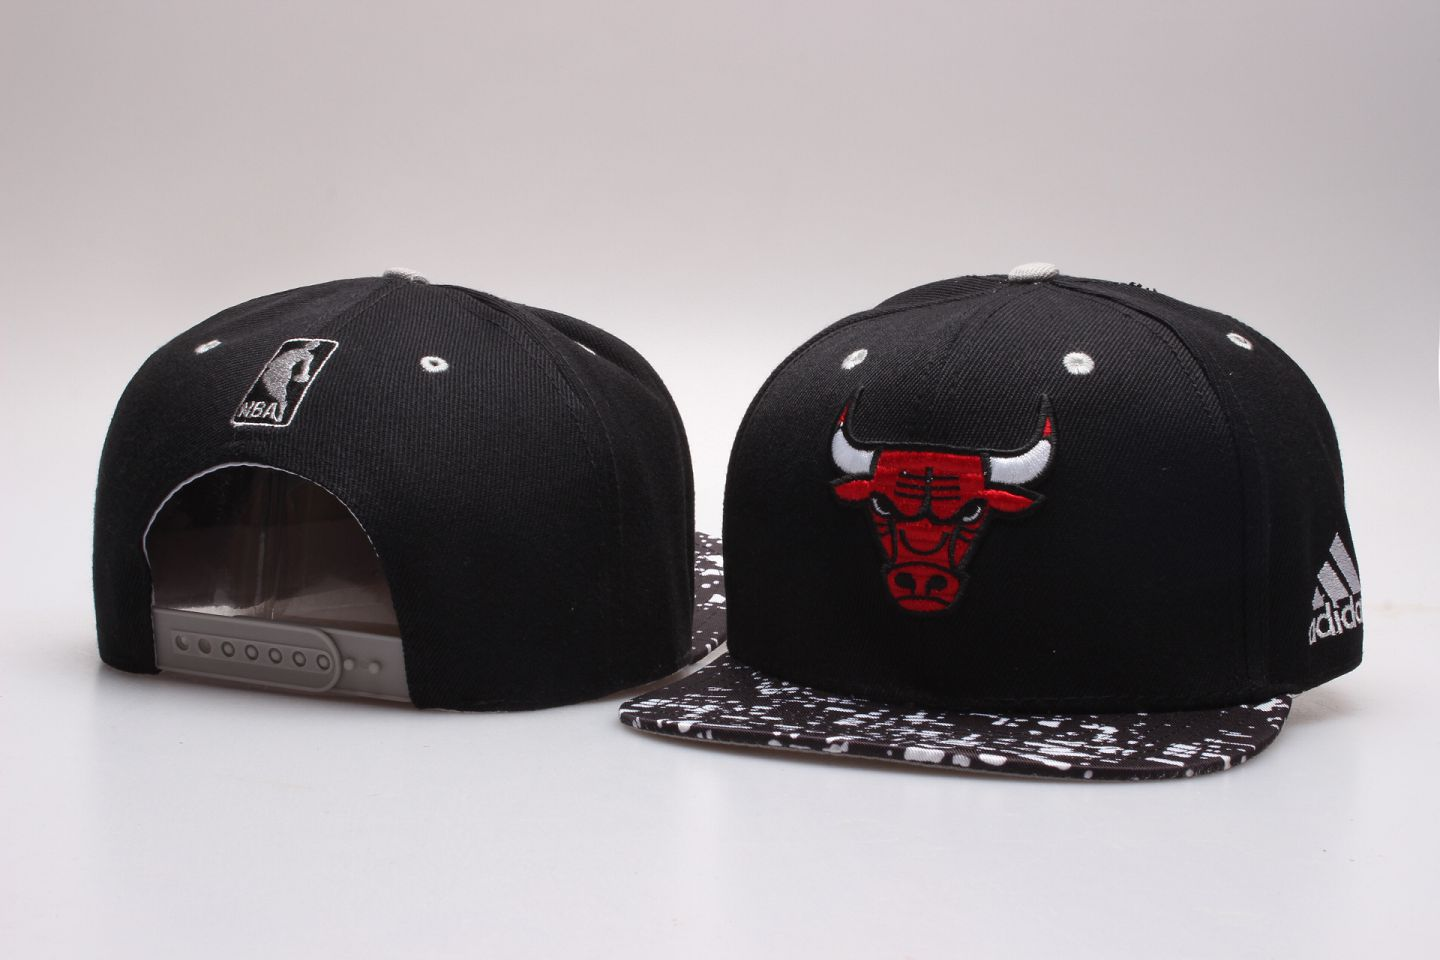 NBA Chicago Bulls Snapback hat 2018112513